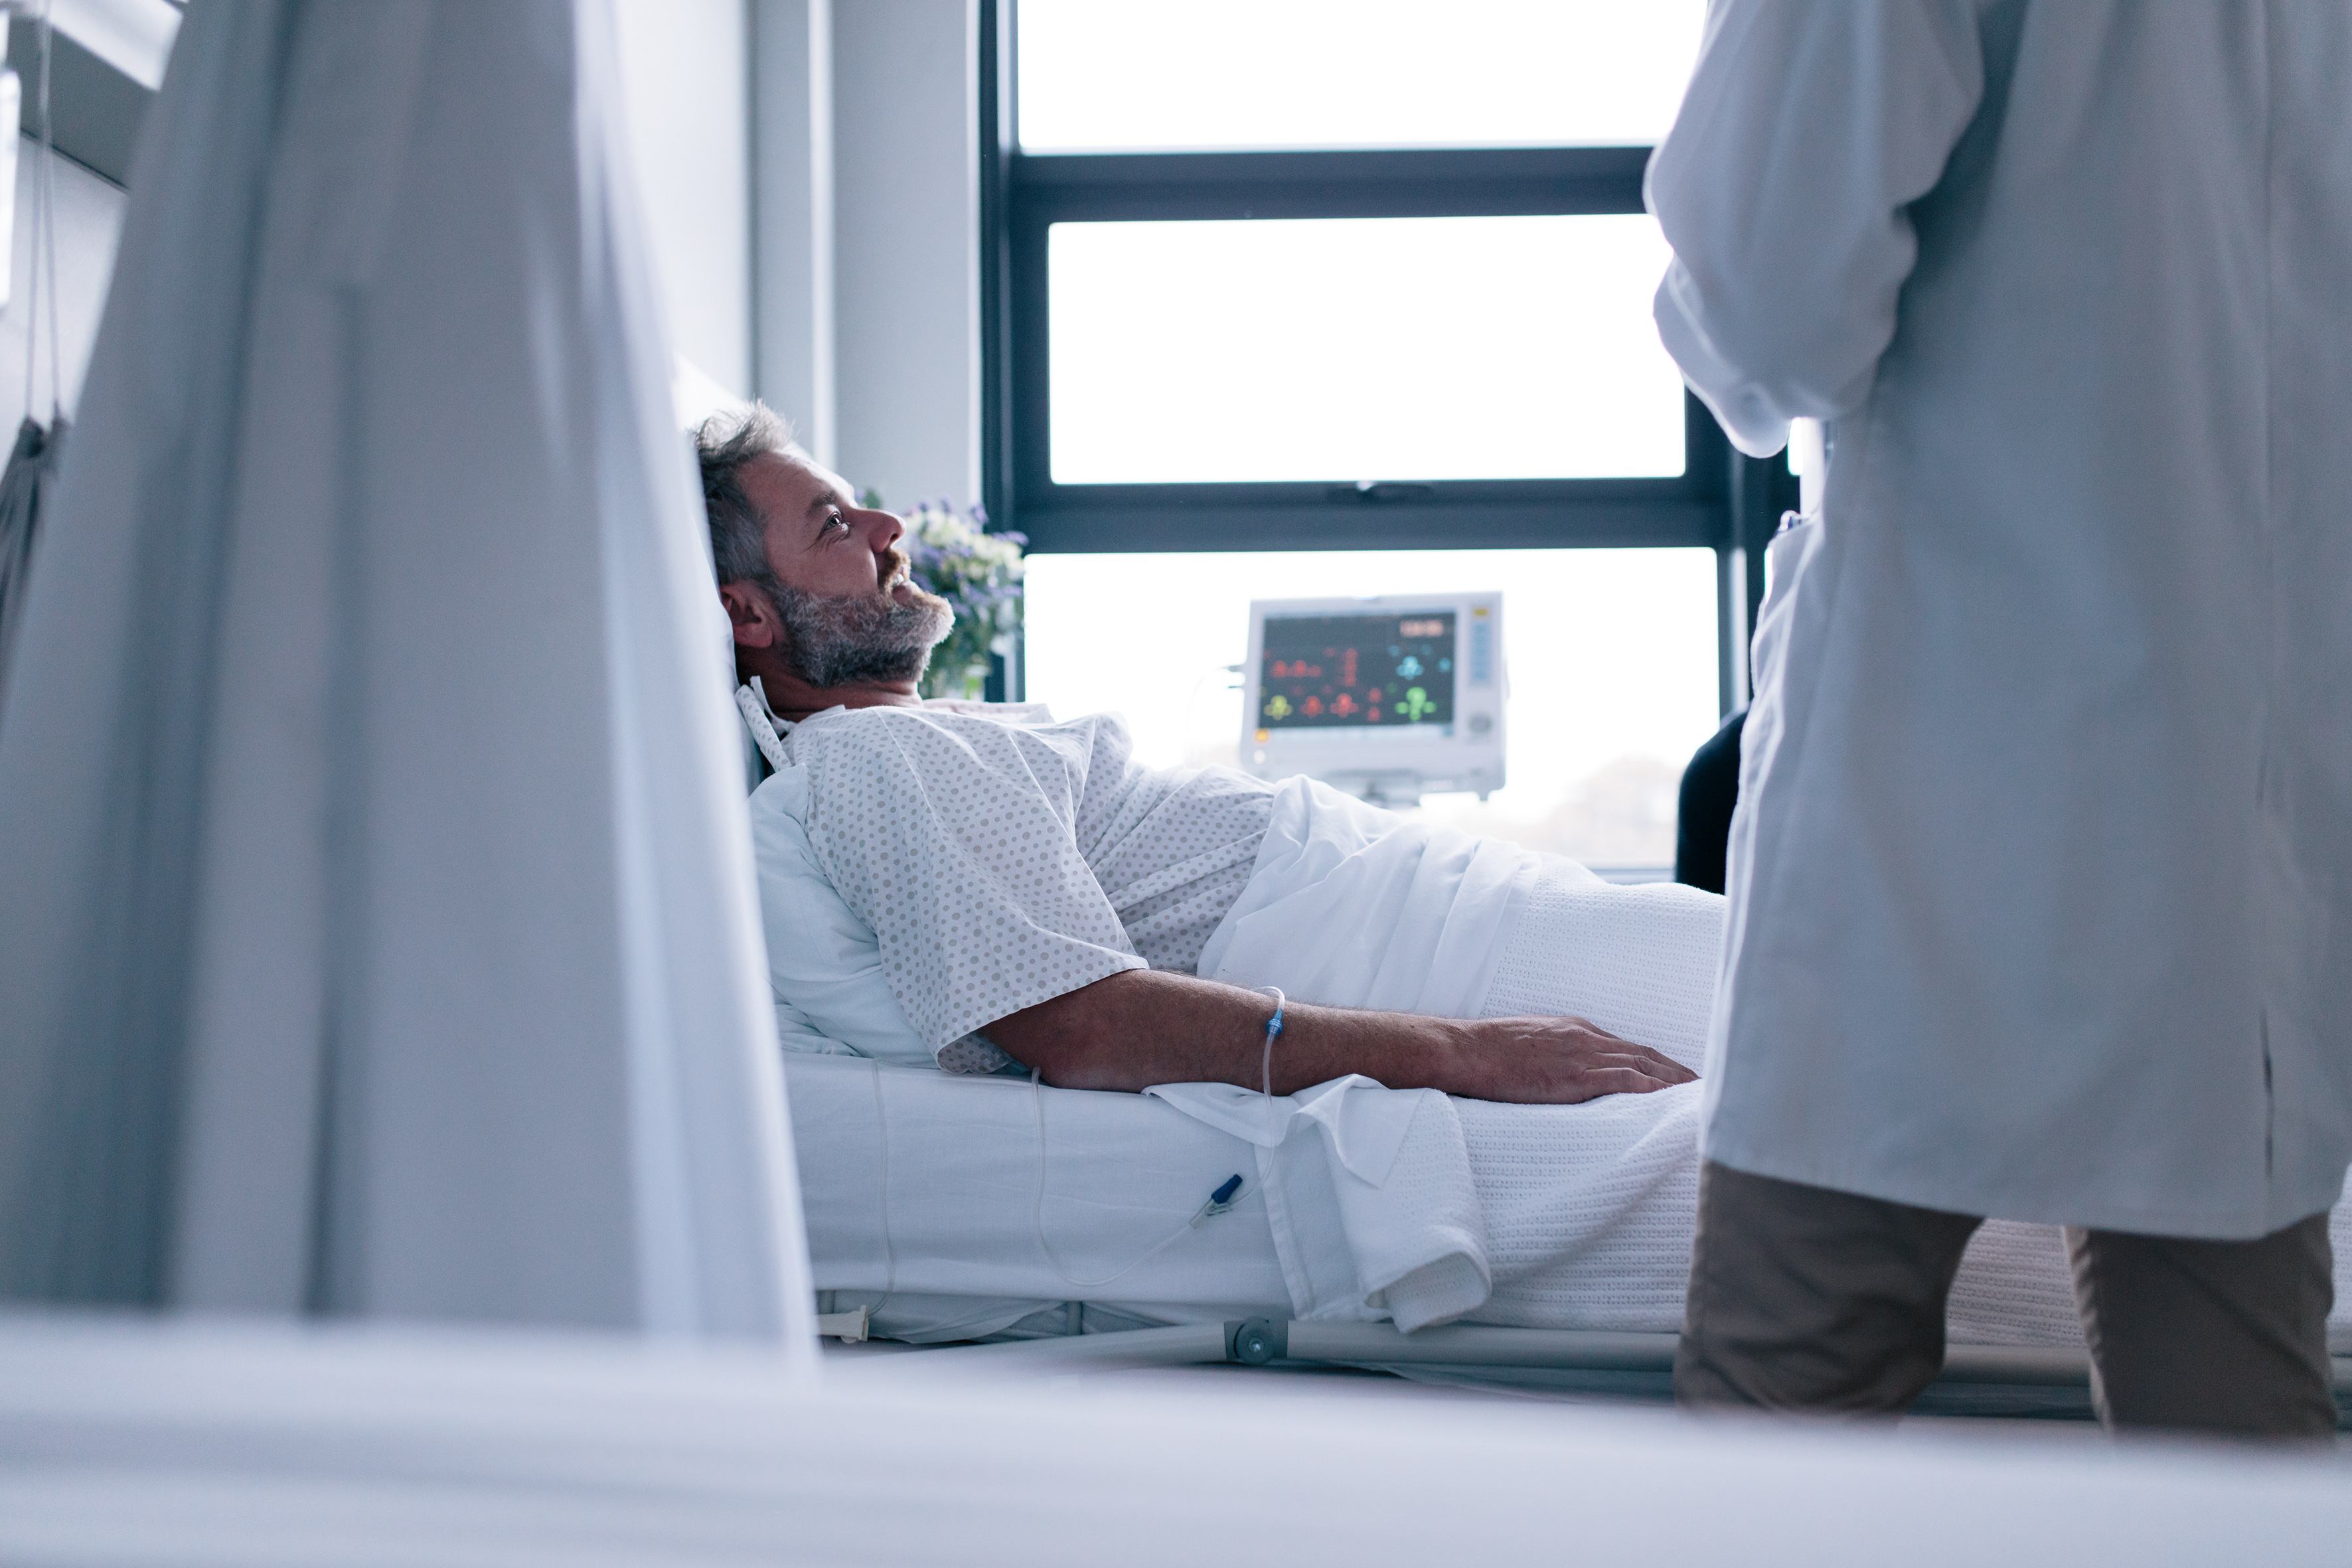 Differences Between ICU and Inpatient Hospital Floors